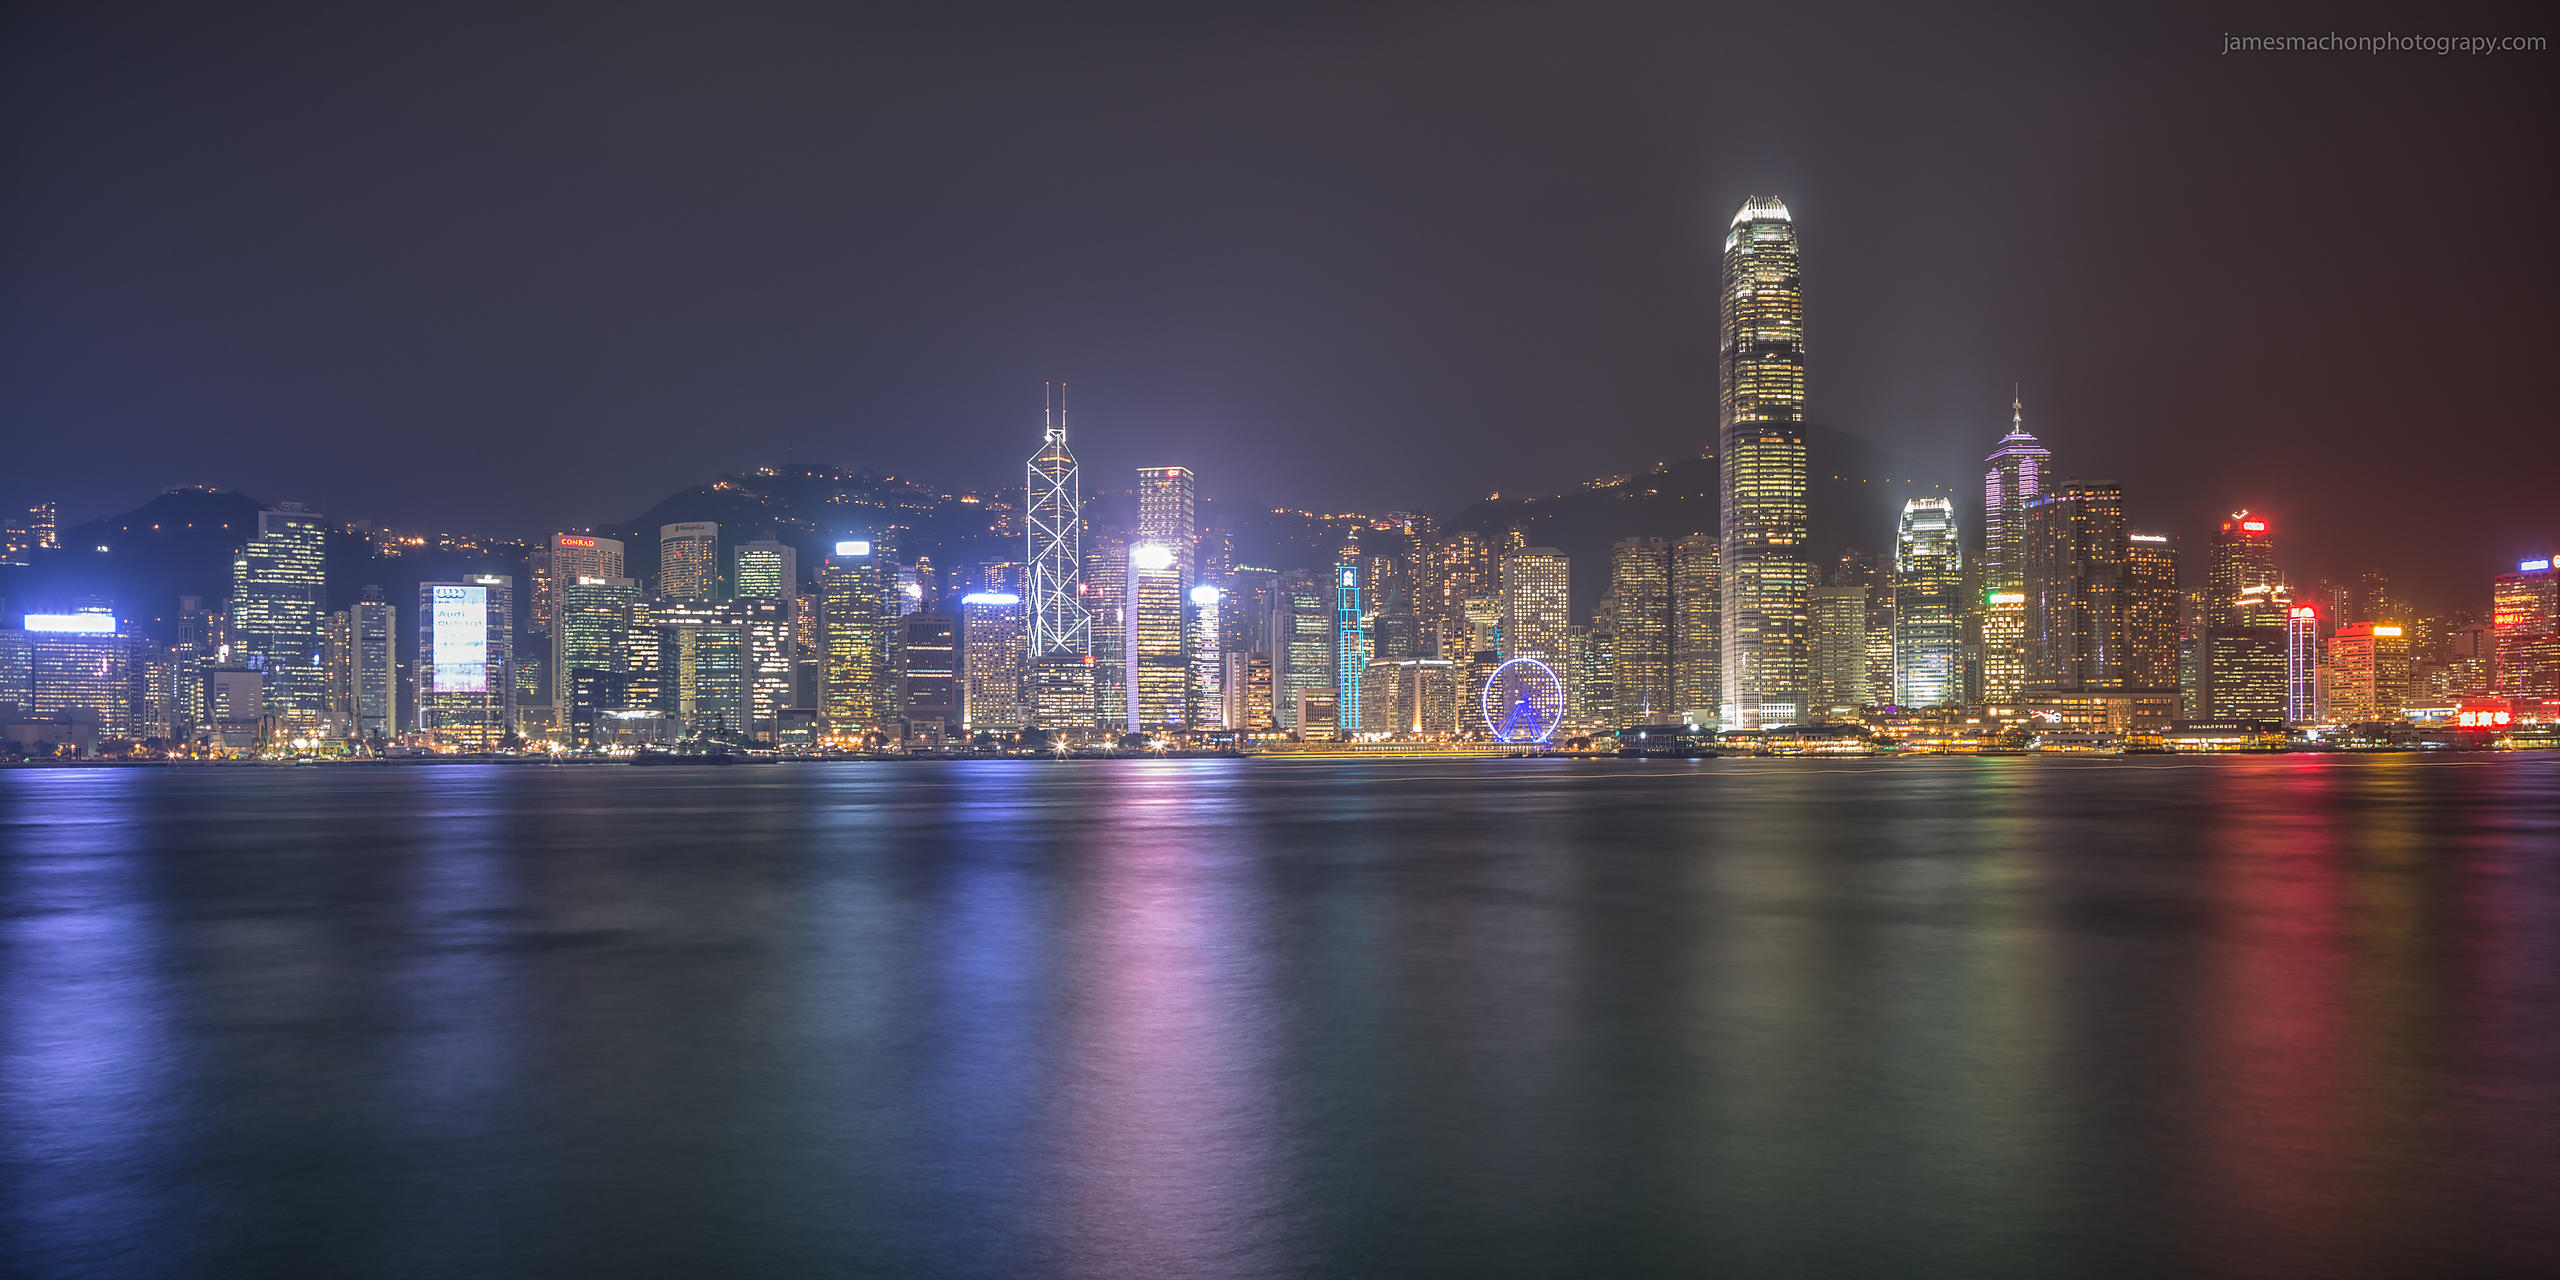 20141113-Hong_Kong_at_Dusk